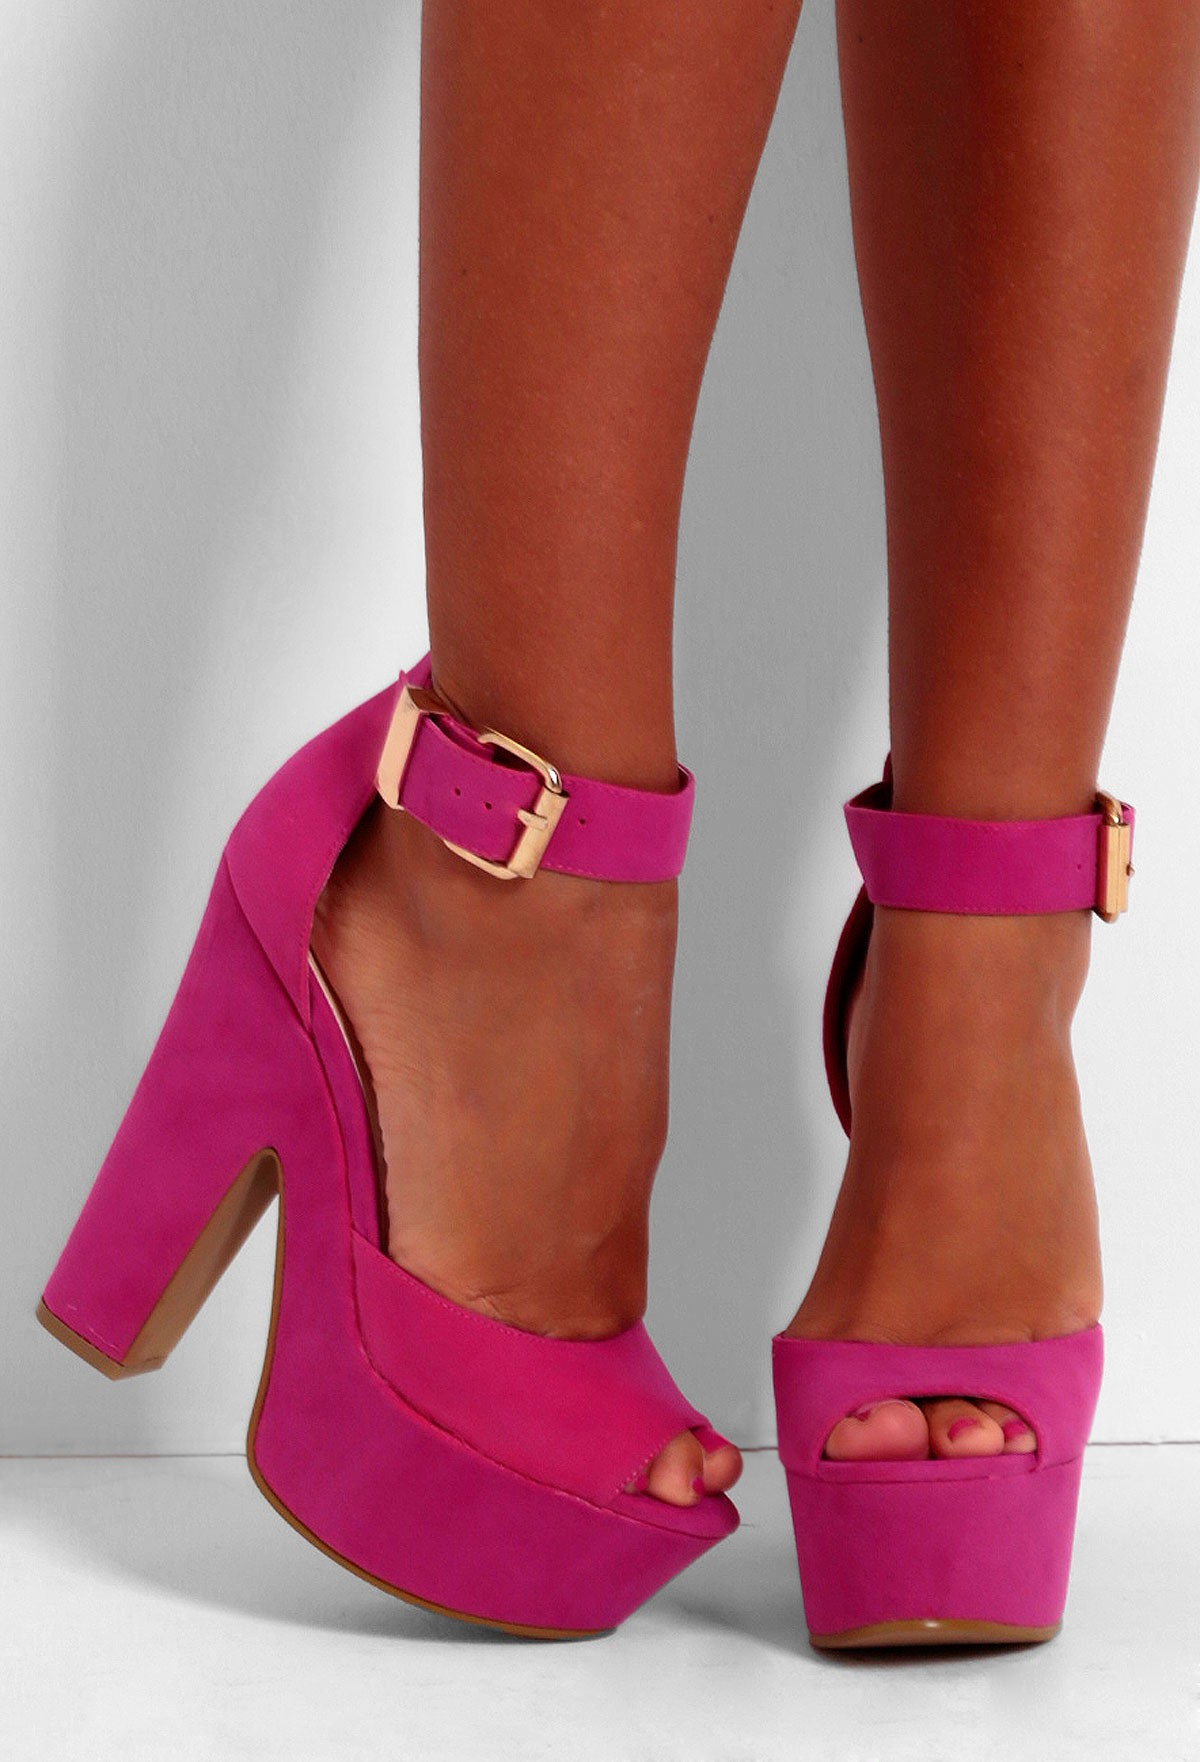 Bright Pink Platform Heels - Is Heel